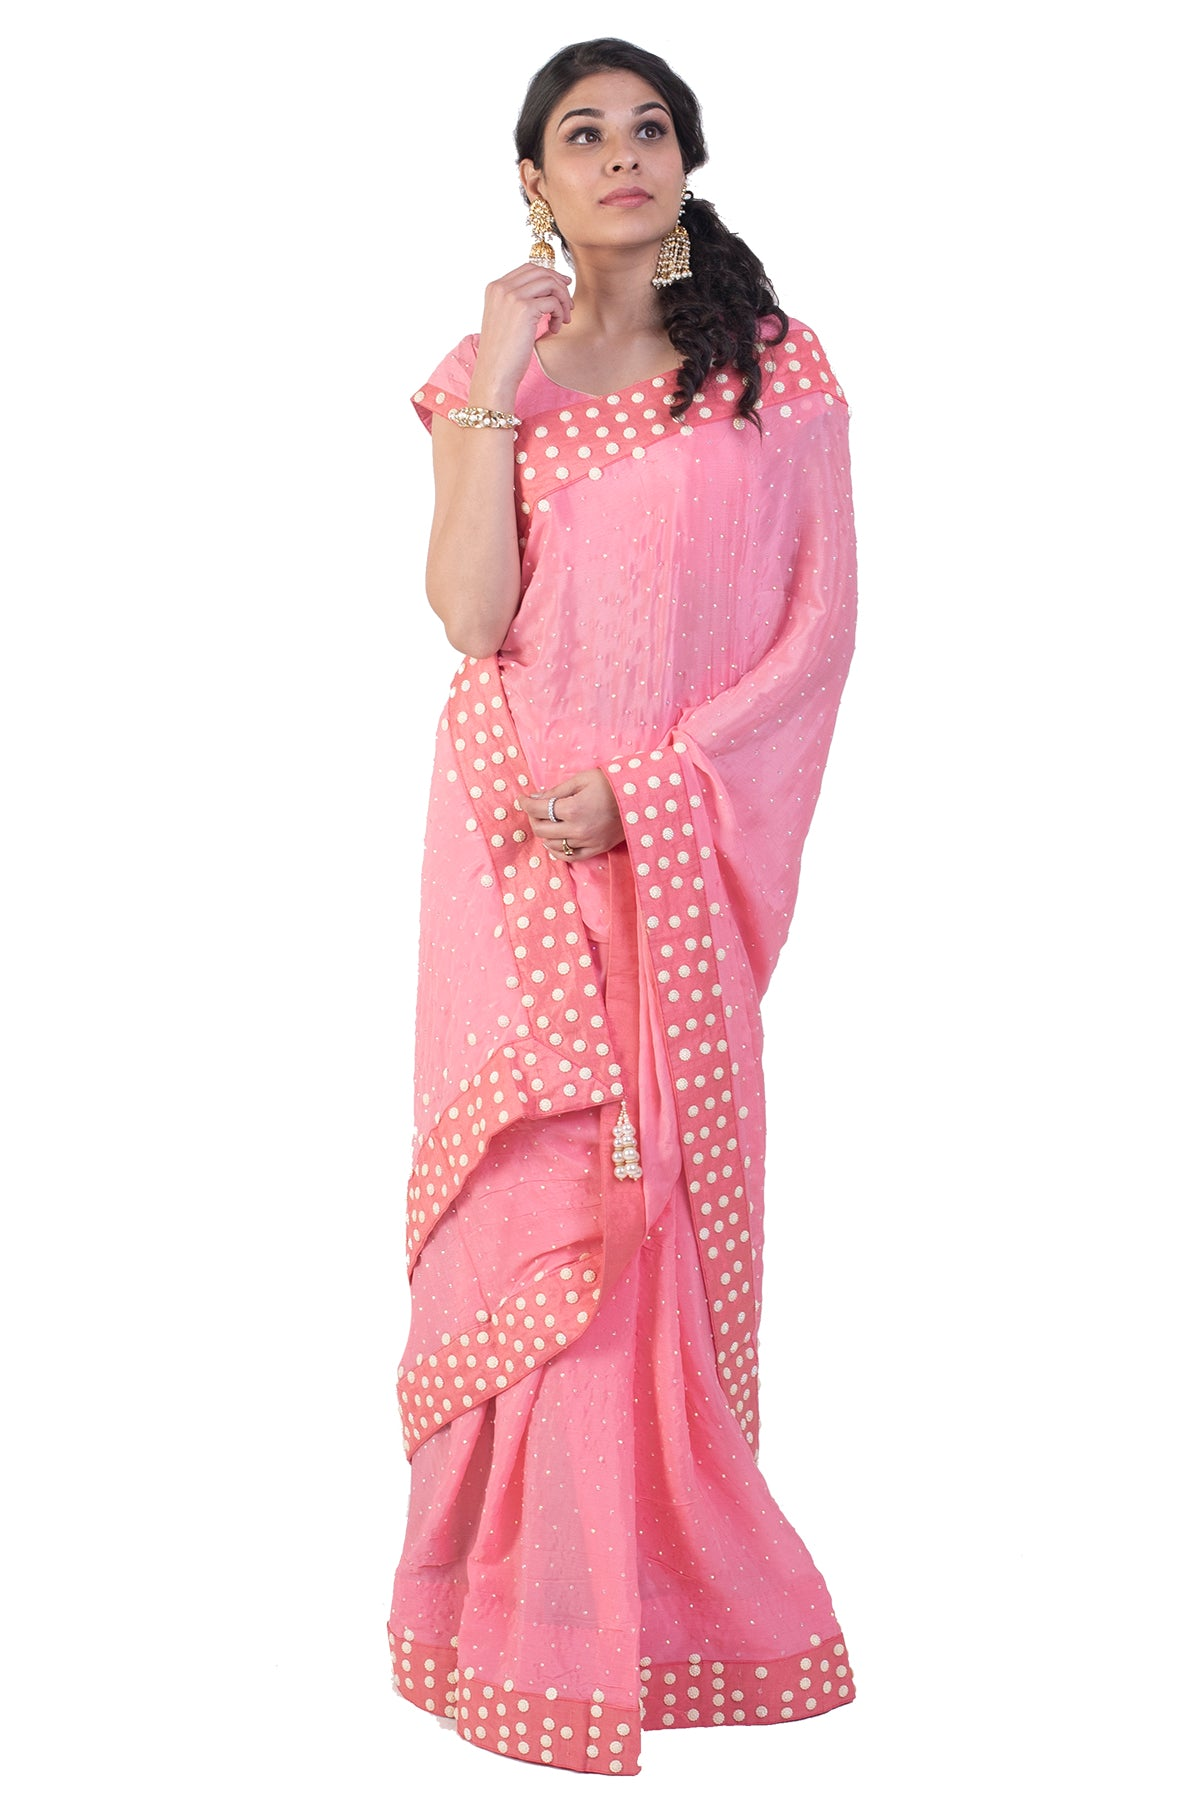 All the retro lovers, here's a saree you would fall in love with, polka dots and pink, there's everything you need for a retro party. The borders have it all done for you!